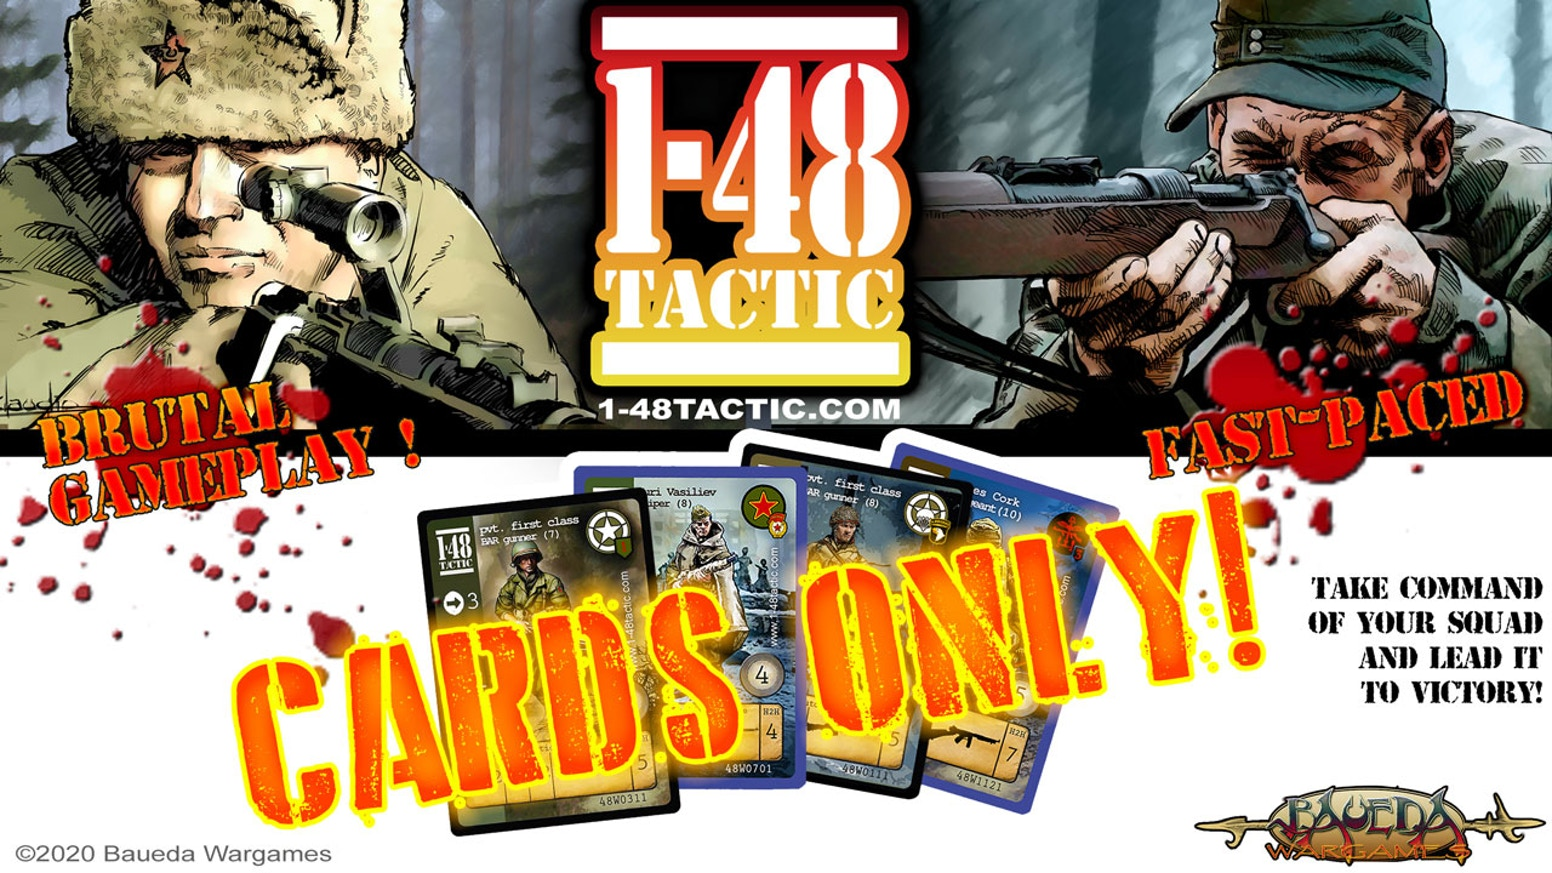 WW2 1-48TACTIC cards game: new individual faction decks introducing new Tactic cards and Officers (rules for these are provided free)!